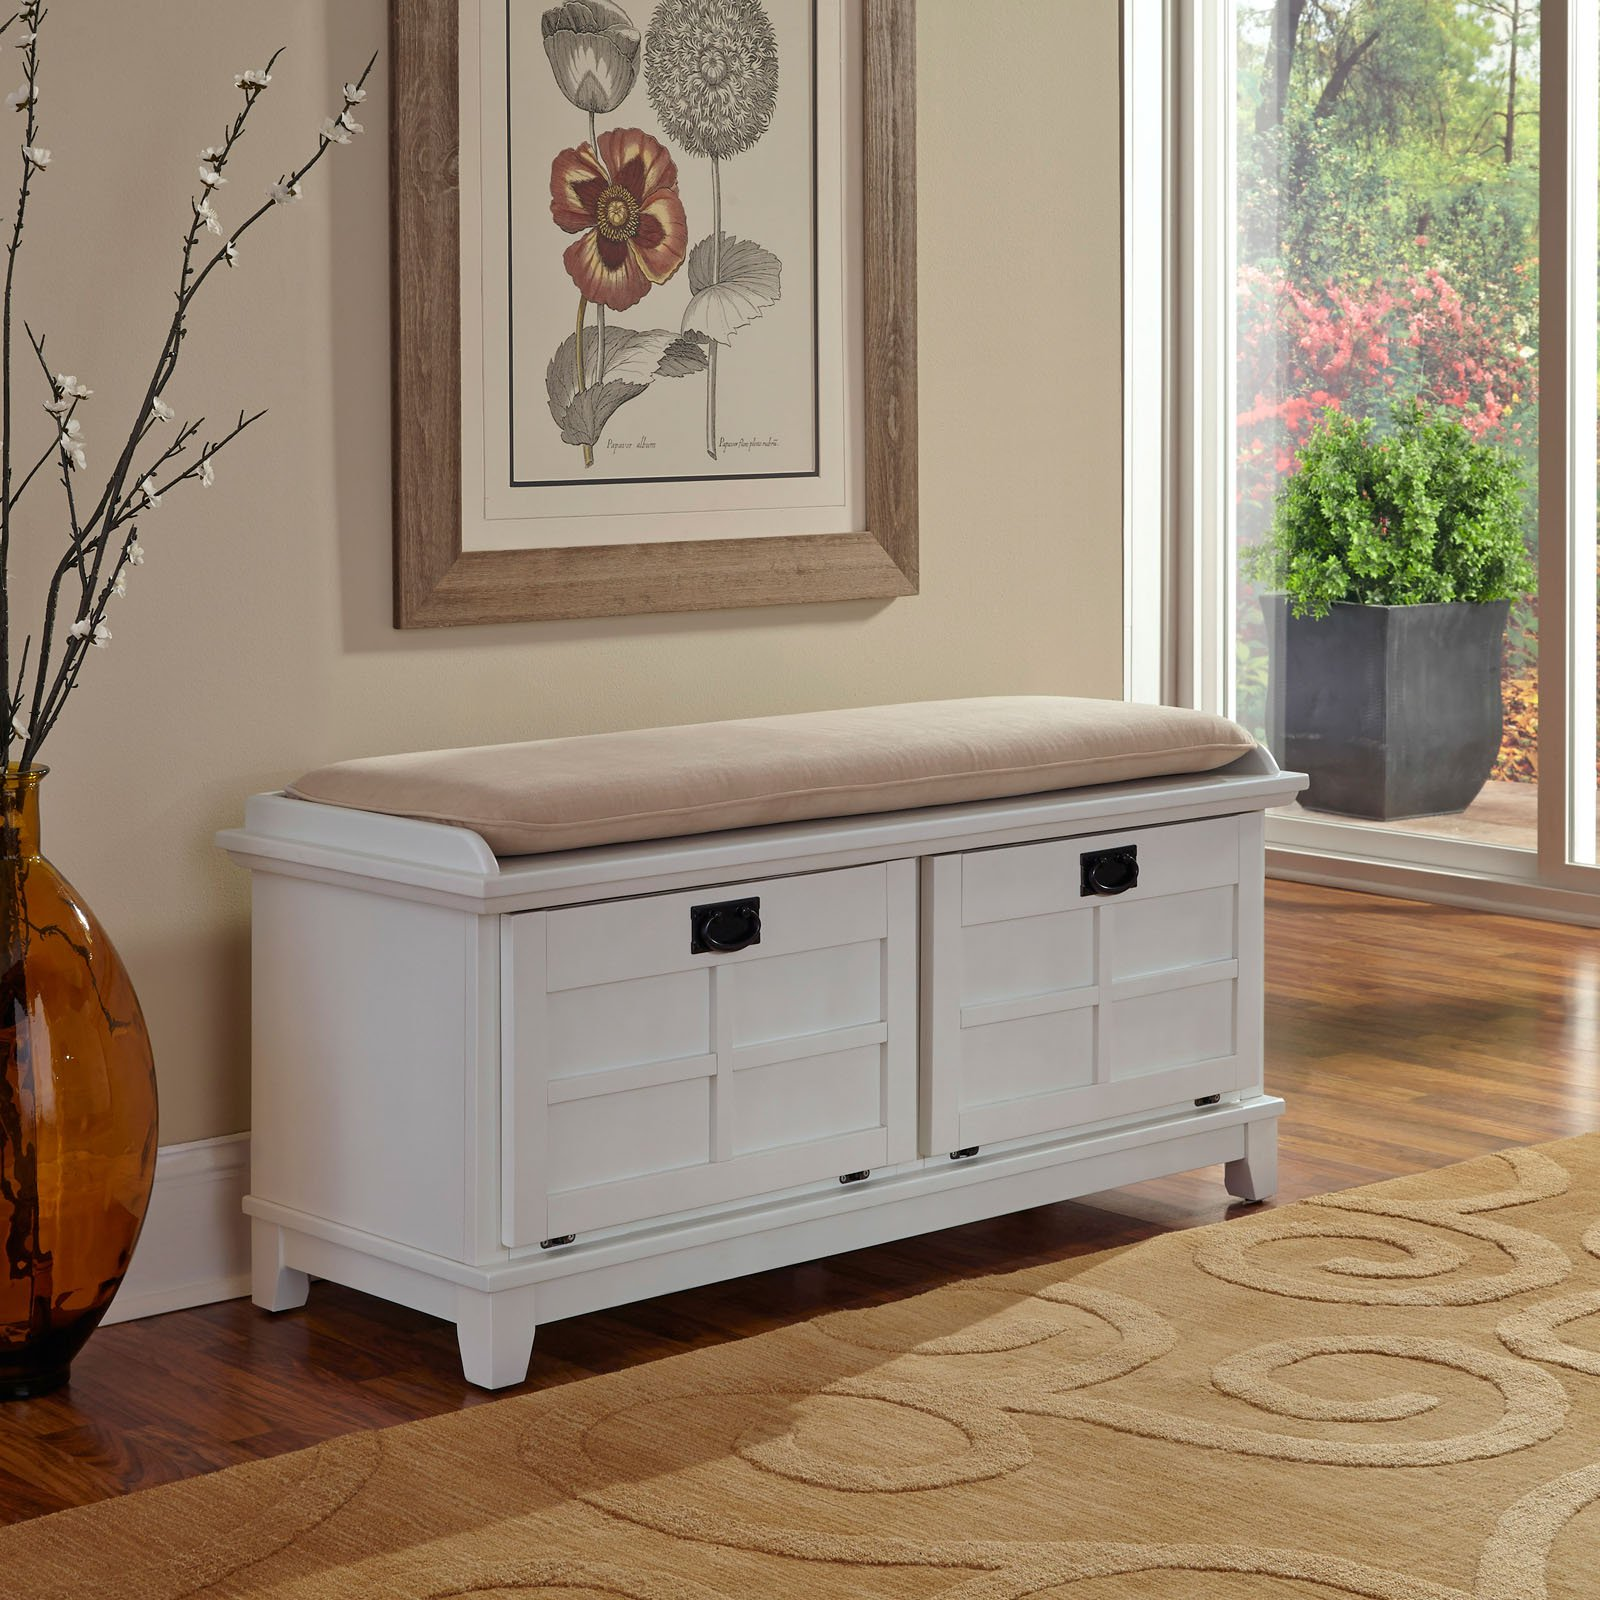 Arts & Crafts White Upholstered Bench